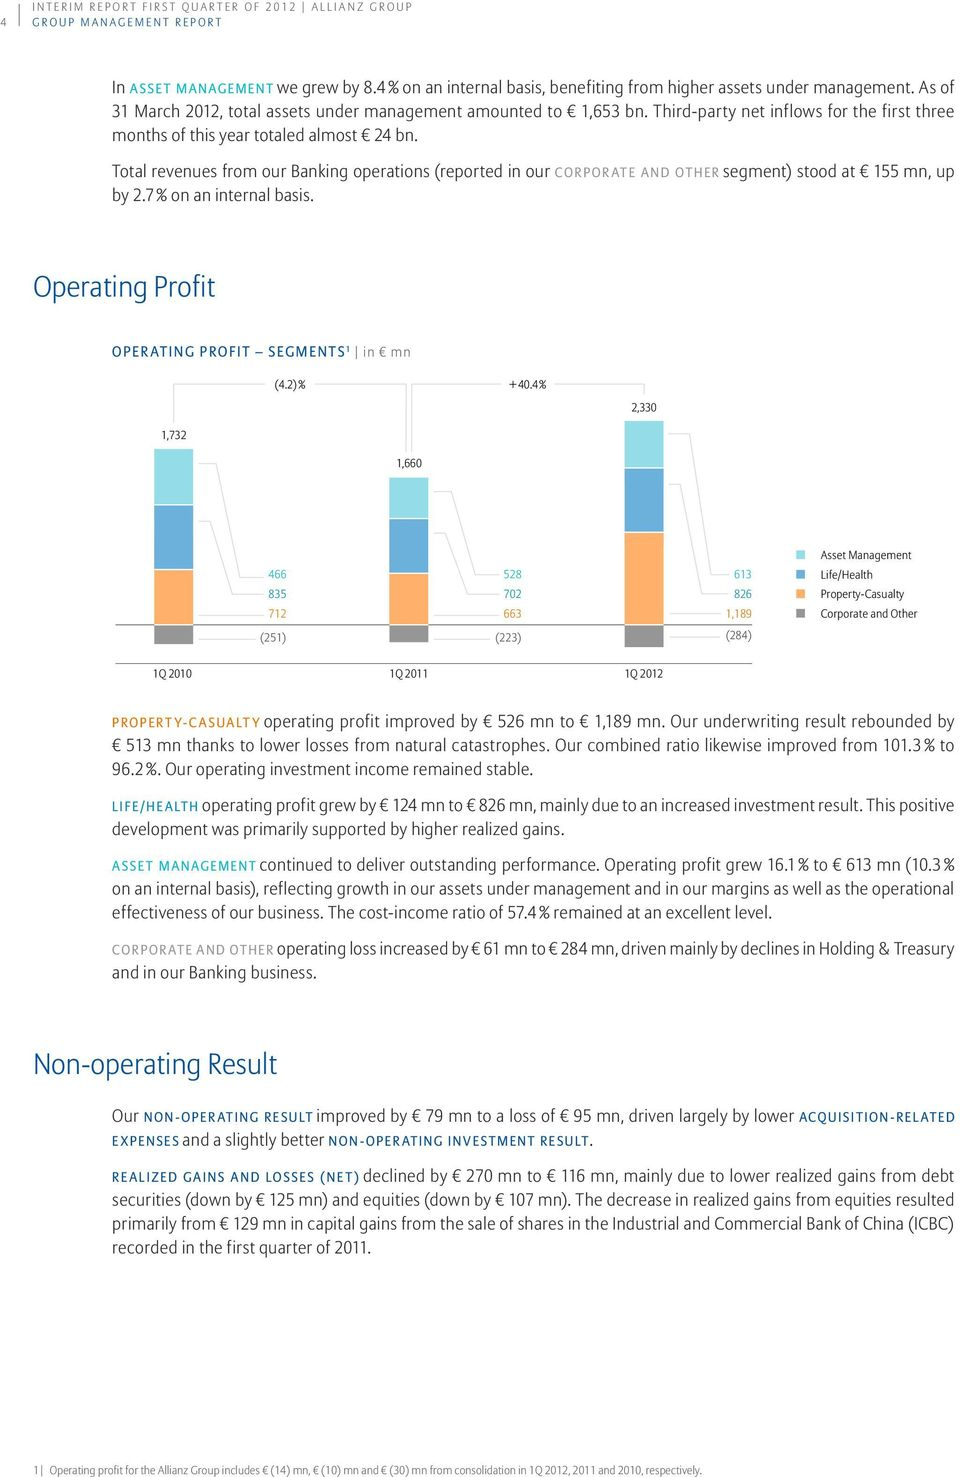 Total revenues from our Banking operations (reported in our Corporate and Other segment) stood at 155 mn, up by 2.7 % on an internal basis. Operating Profit Operating profit Segments 1 in mn (4.